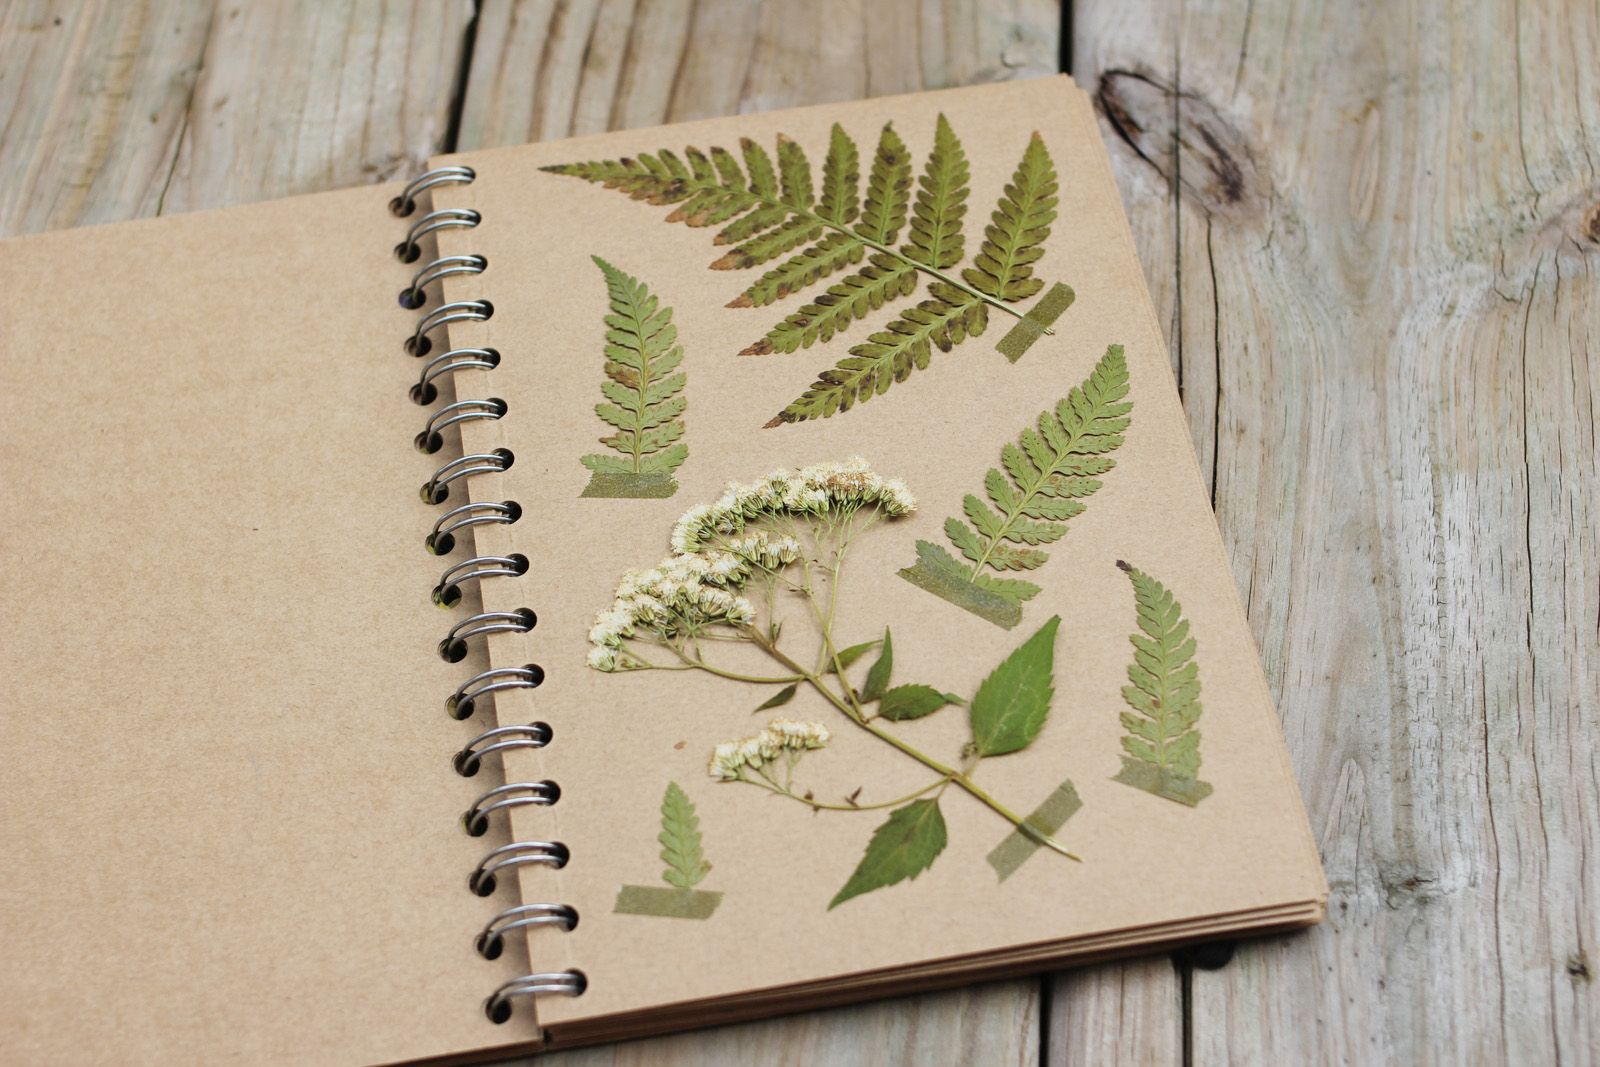 Uncategorized How To Make Pressed Flowers the dainty squid plant pressing tips nature study homeschool i want to start flowers tips